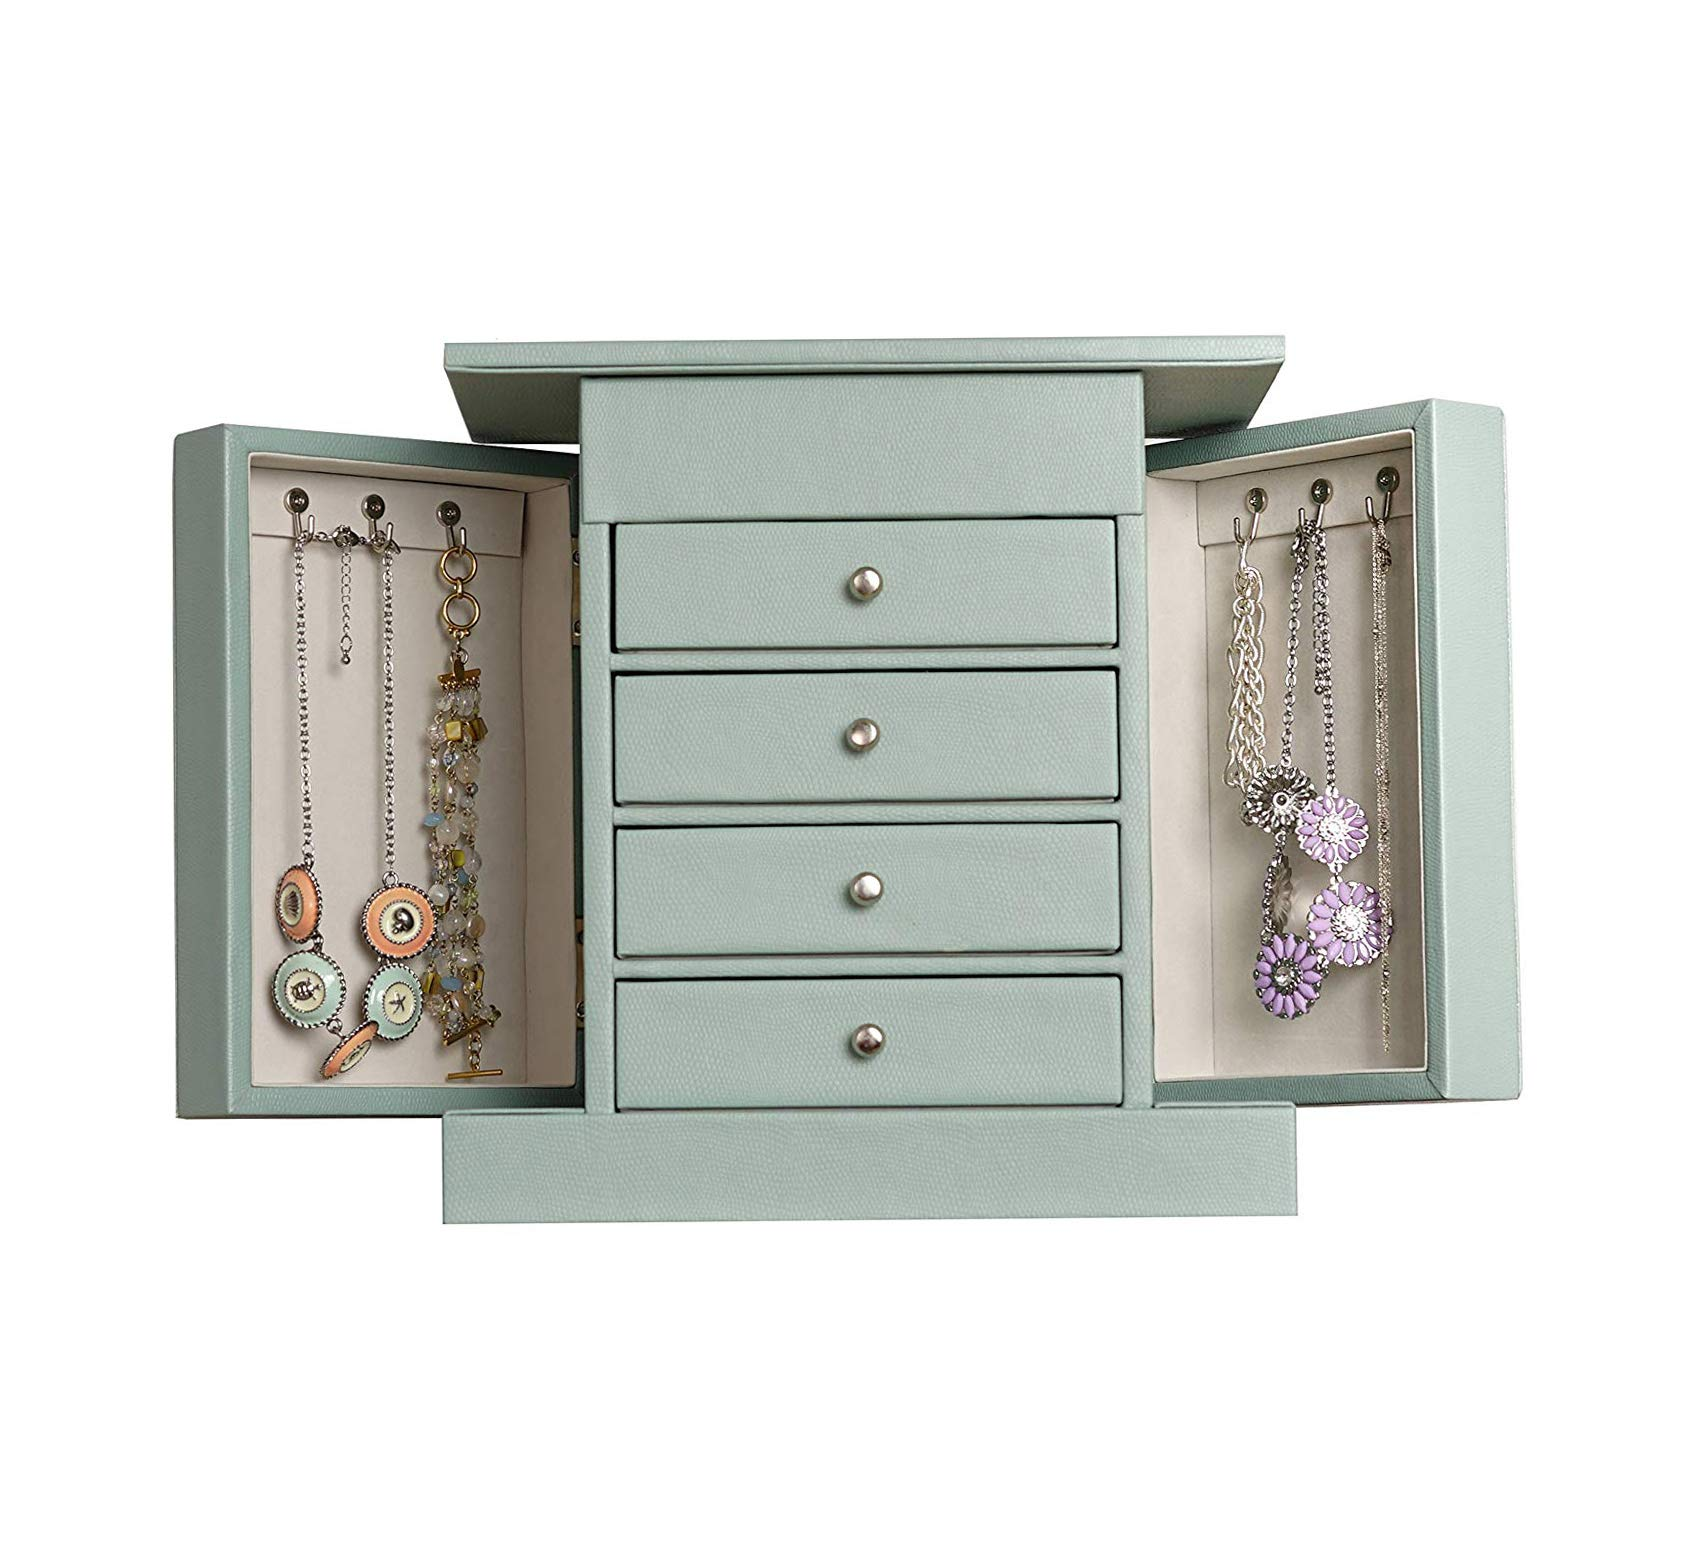 Wood & Style Furniture Blue Jewelry Box, Jewelry Organizer, Mirror Jewelry Chest Home Office Commerial Heavy Duty Strong Décor